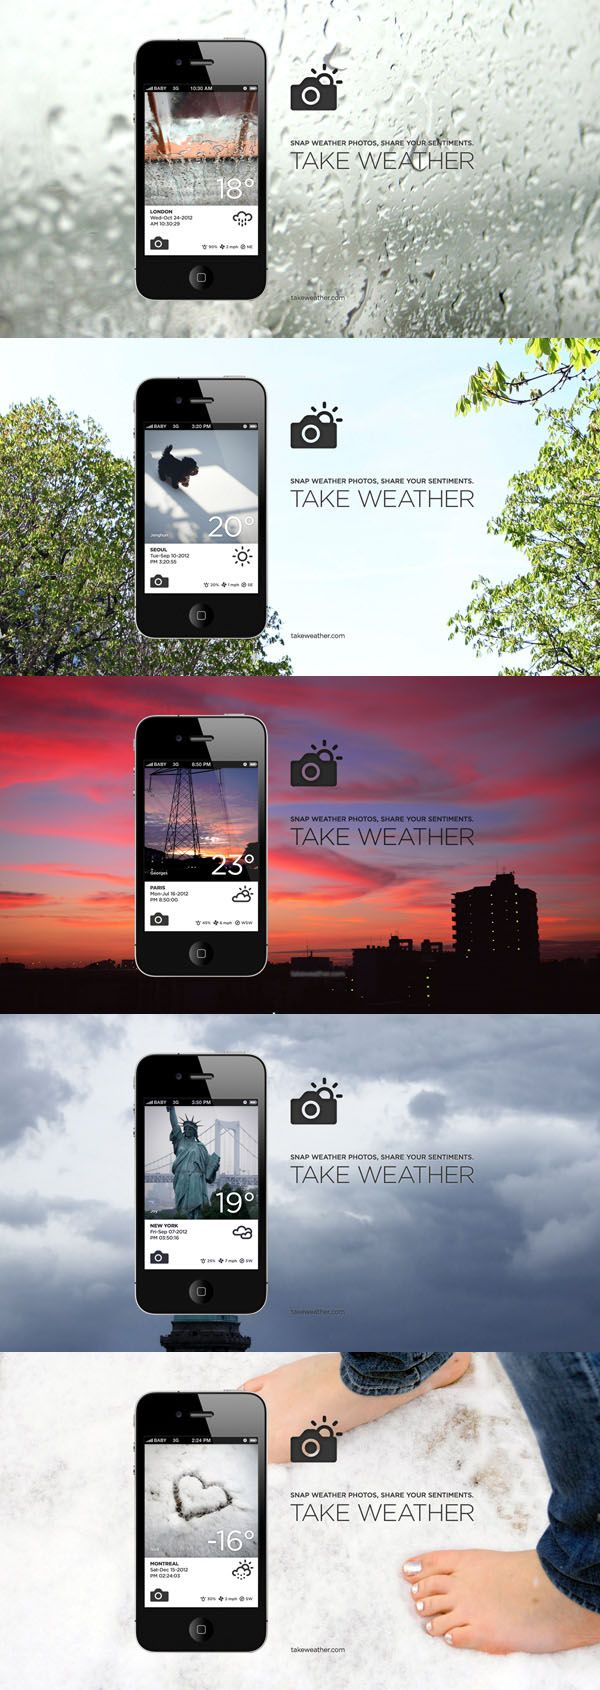 Take Weather. A new weather-social networking application with photos. Snap weather photos, share your sentiments. I think it's pretty cool.